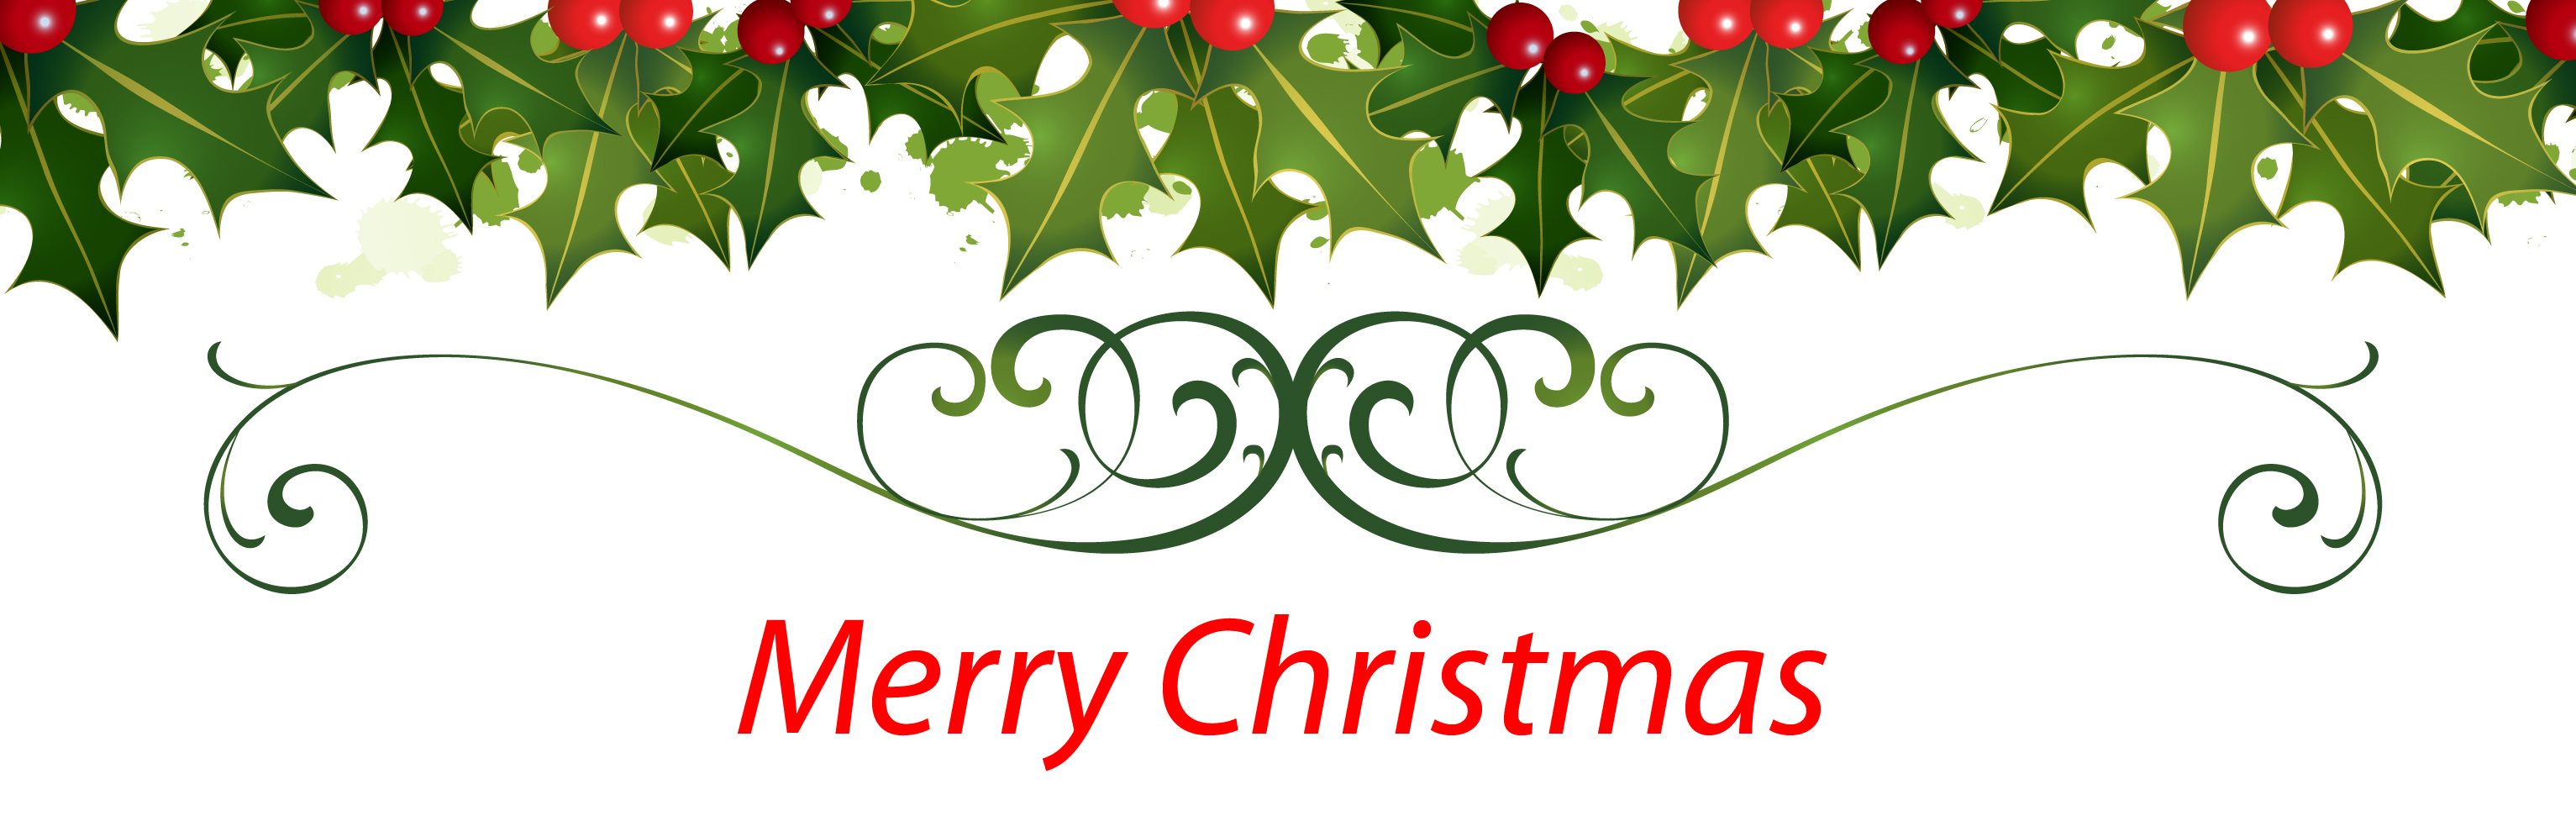 merry christmas and happy new year - Merry Merry Merry Christmas